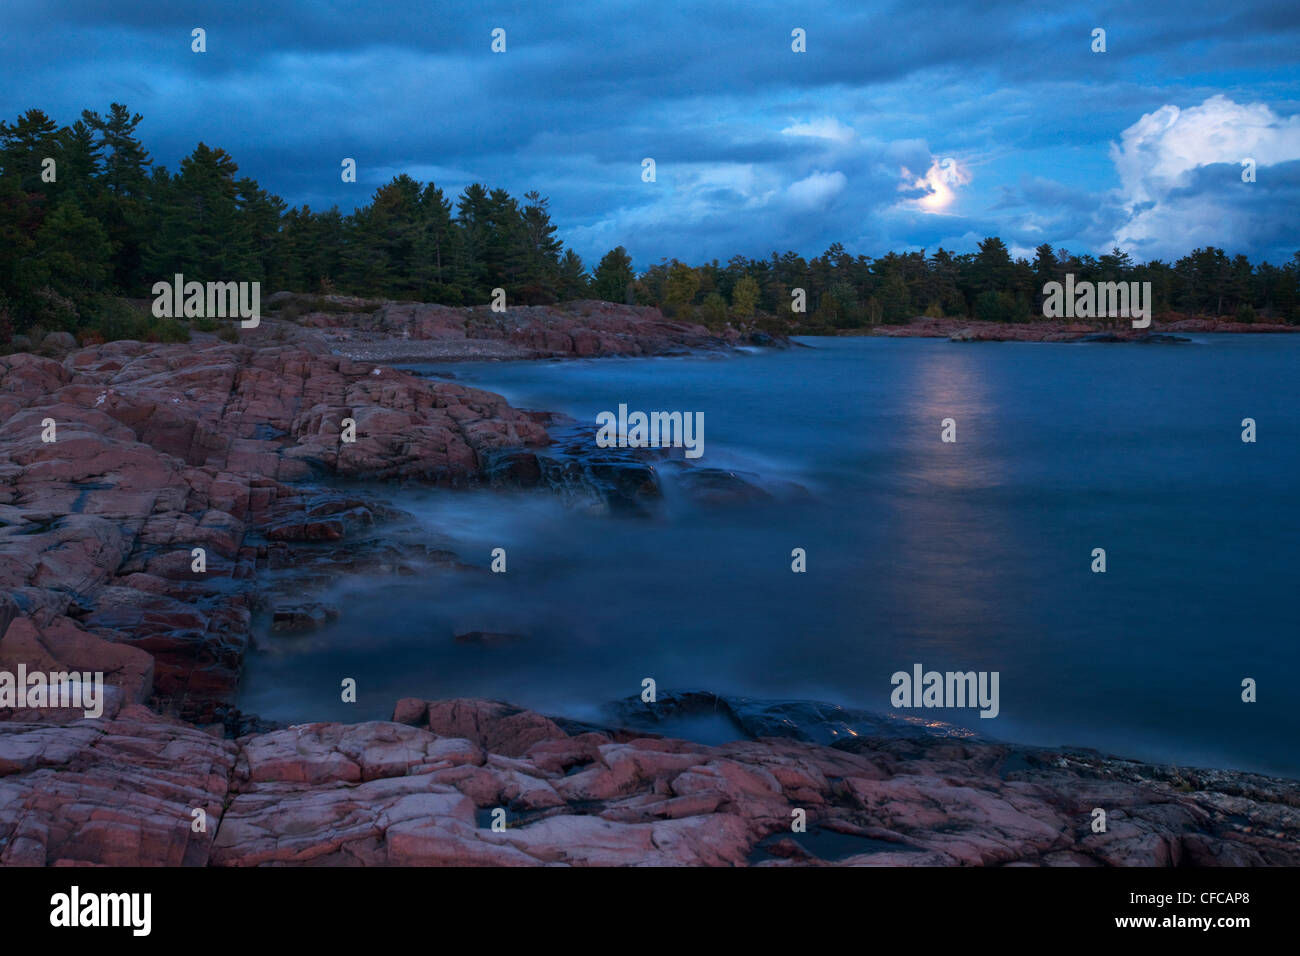 A full moon is unveiled as clouds pass over Georgian Bay in Killarney Provincial Park in Northern Ontario. - Stock Image